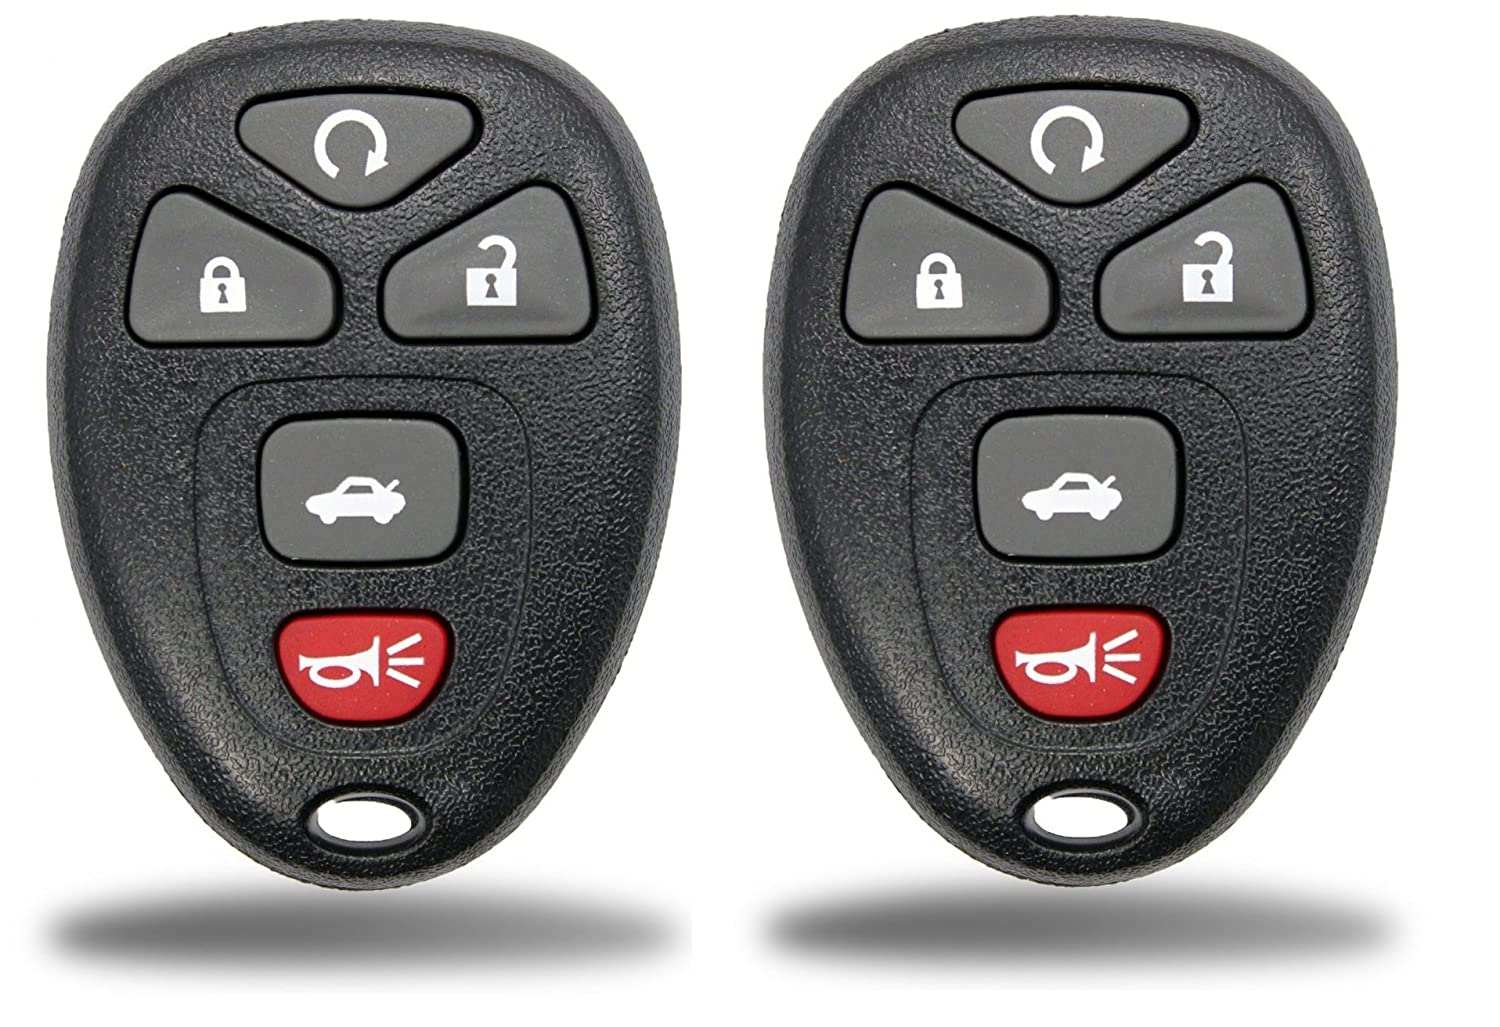 KeylessCanada © 2 New Keyless Entry 5 Button Remote Start Car Key Fob Shell Case for Select GM Chevrolet Buick Pontiac & Saturn FCC KOBGT04A 22733524 - Shell Only (2 Pack)